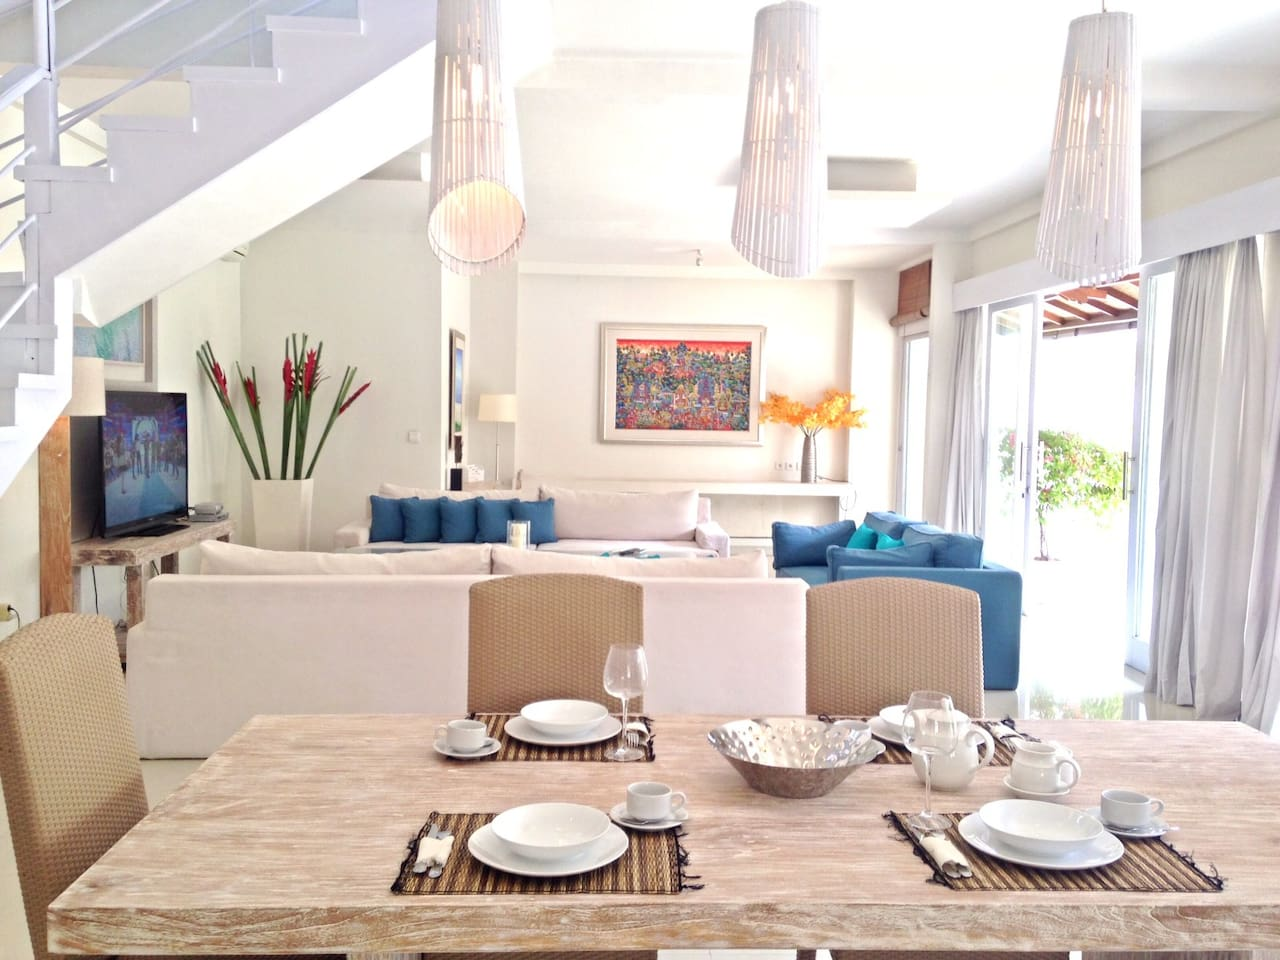 Airy living area overlooking the pool with modern decor and beautiful art works.